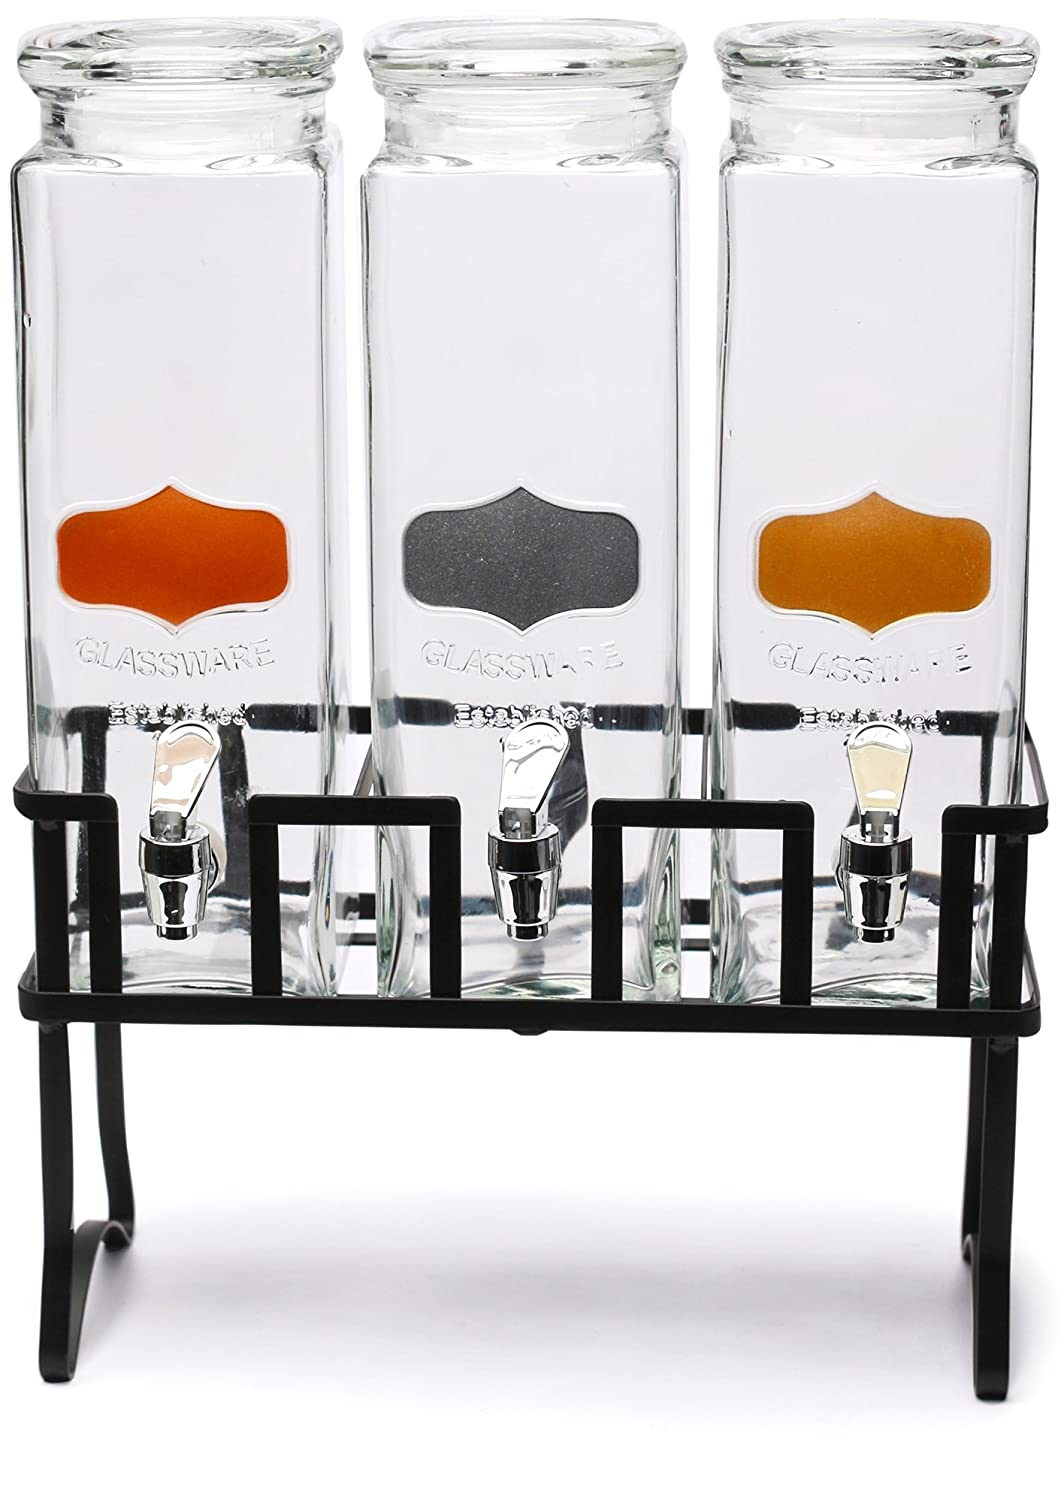 Circleware 69133 Triple XL Tall Yorkshire Beverage Drink Chalkboard Dispensers with Glass Lids and Black Metal Stand, 2.5 Quarts each each, Copper, Gold and Silver Panels